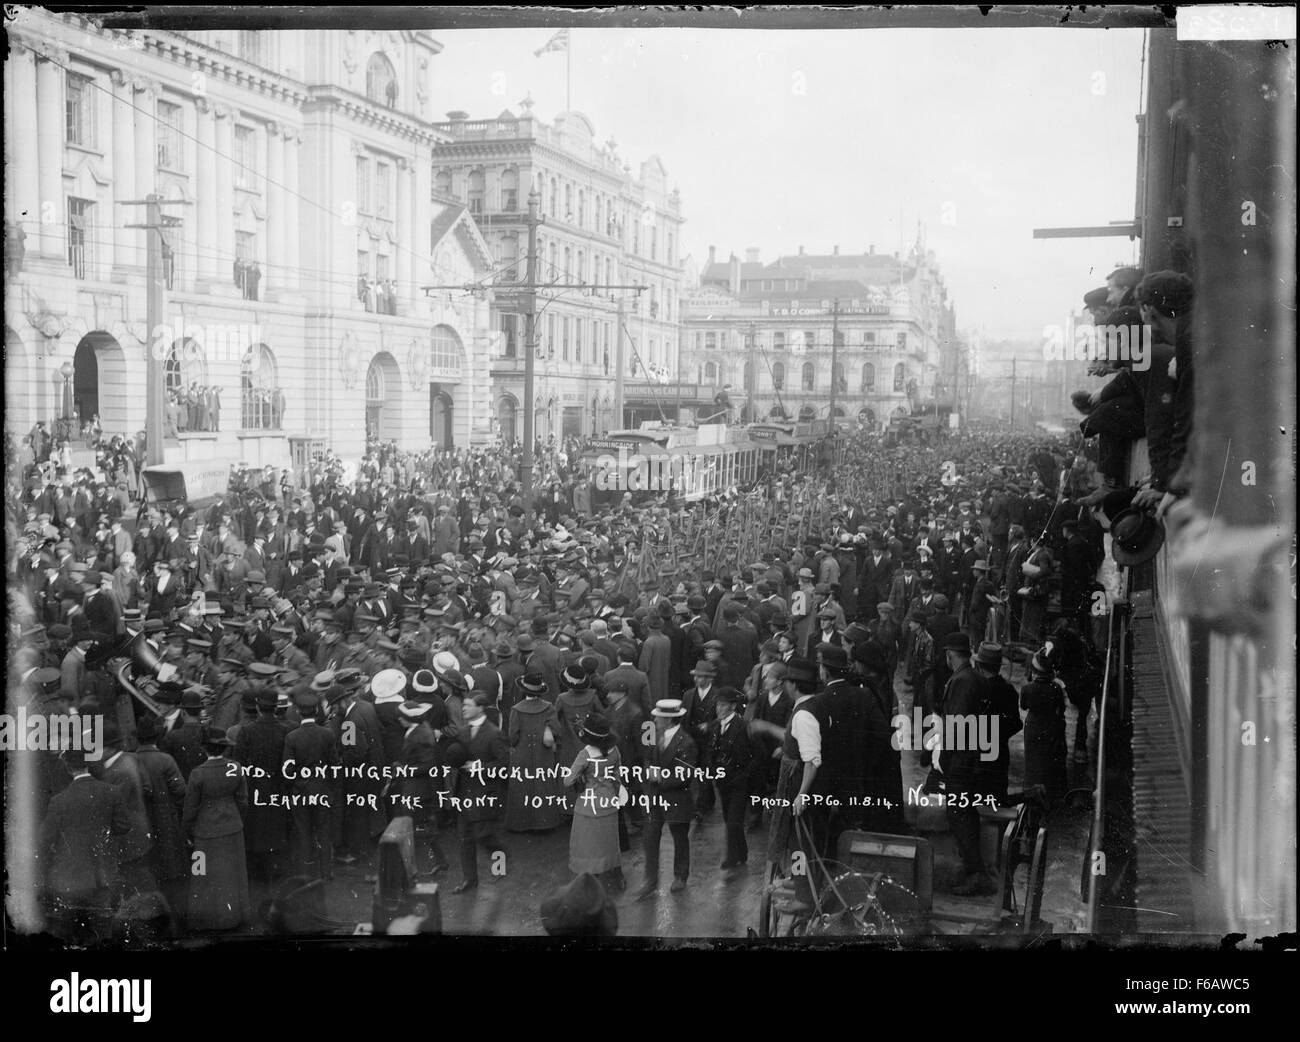 2nd Contingent of Auckland Territorials leaving for the Front - Stock Image